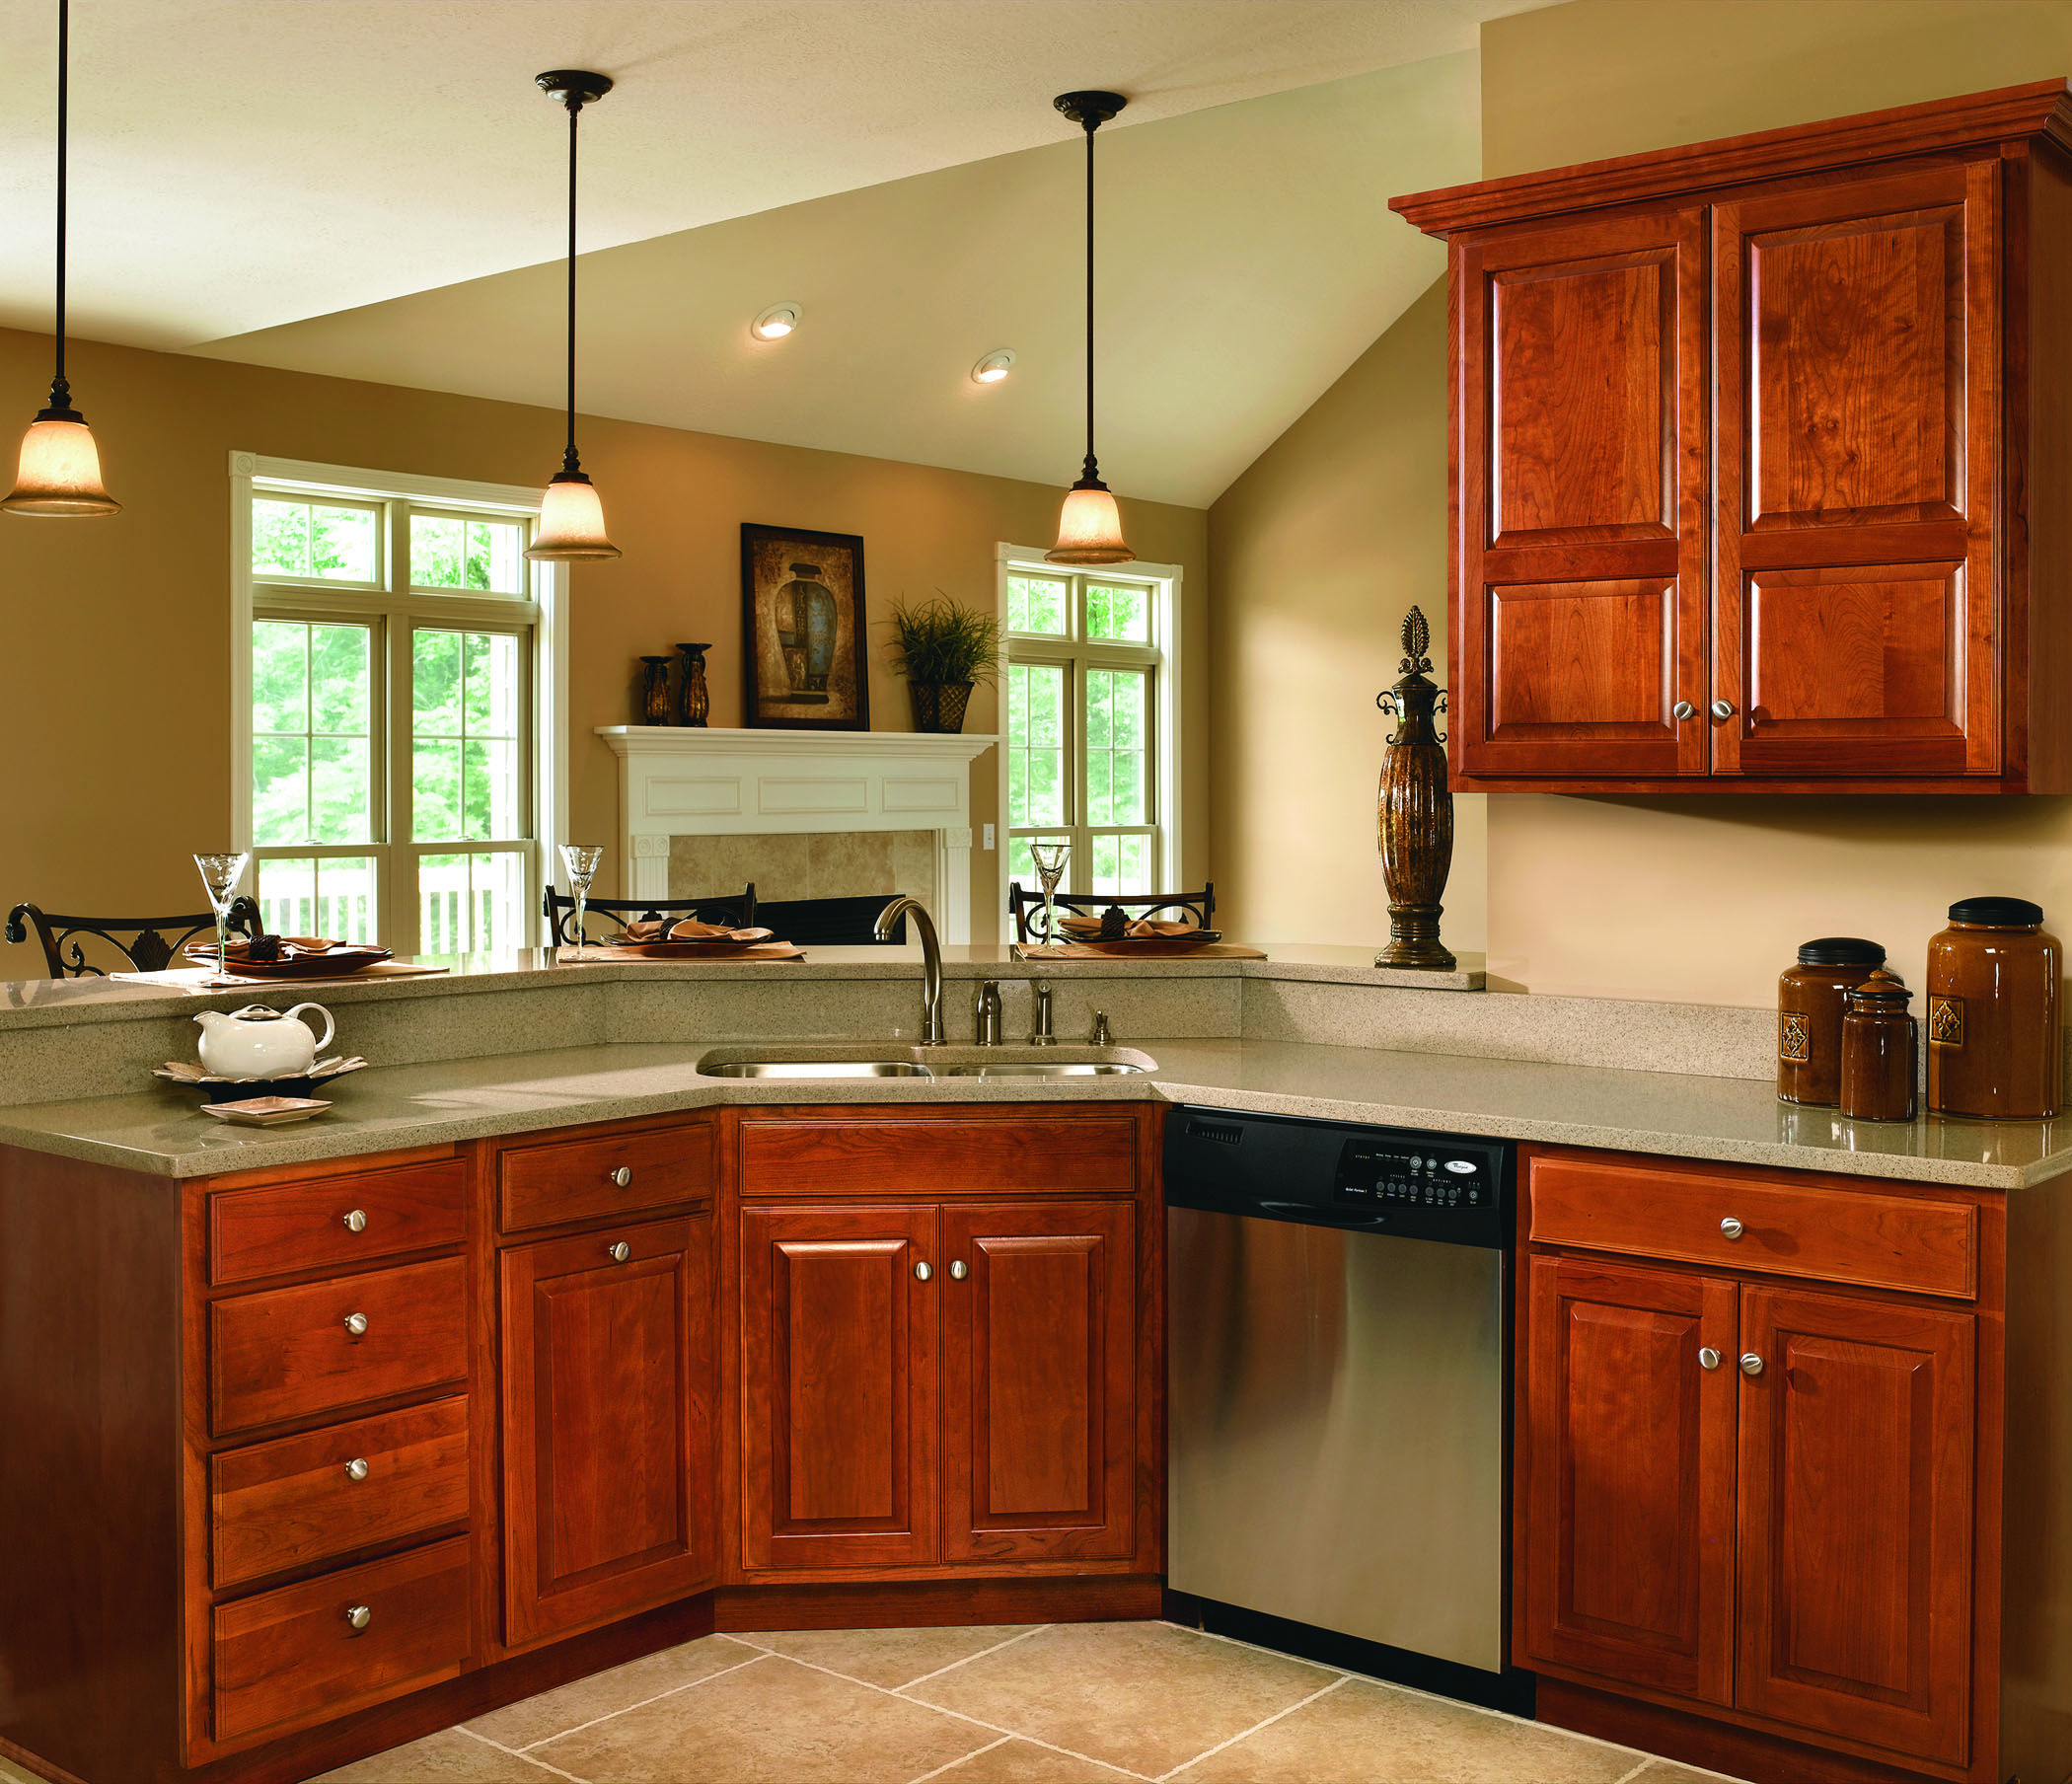 Haas Cabinet Co Federal Square Door Style Partial Overlay Wood Species Cherry Finish Spice Kitchen Cabinets Cherry Wood Cabinets Cherry Cabinets Kitchen